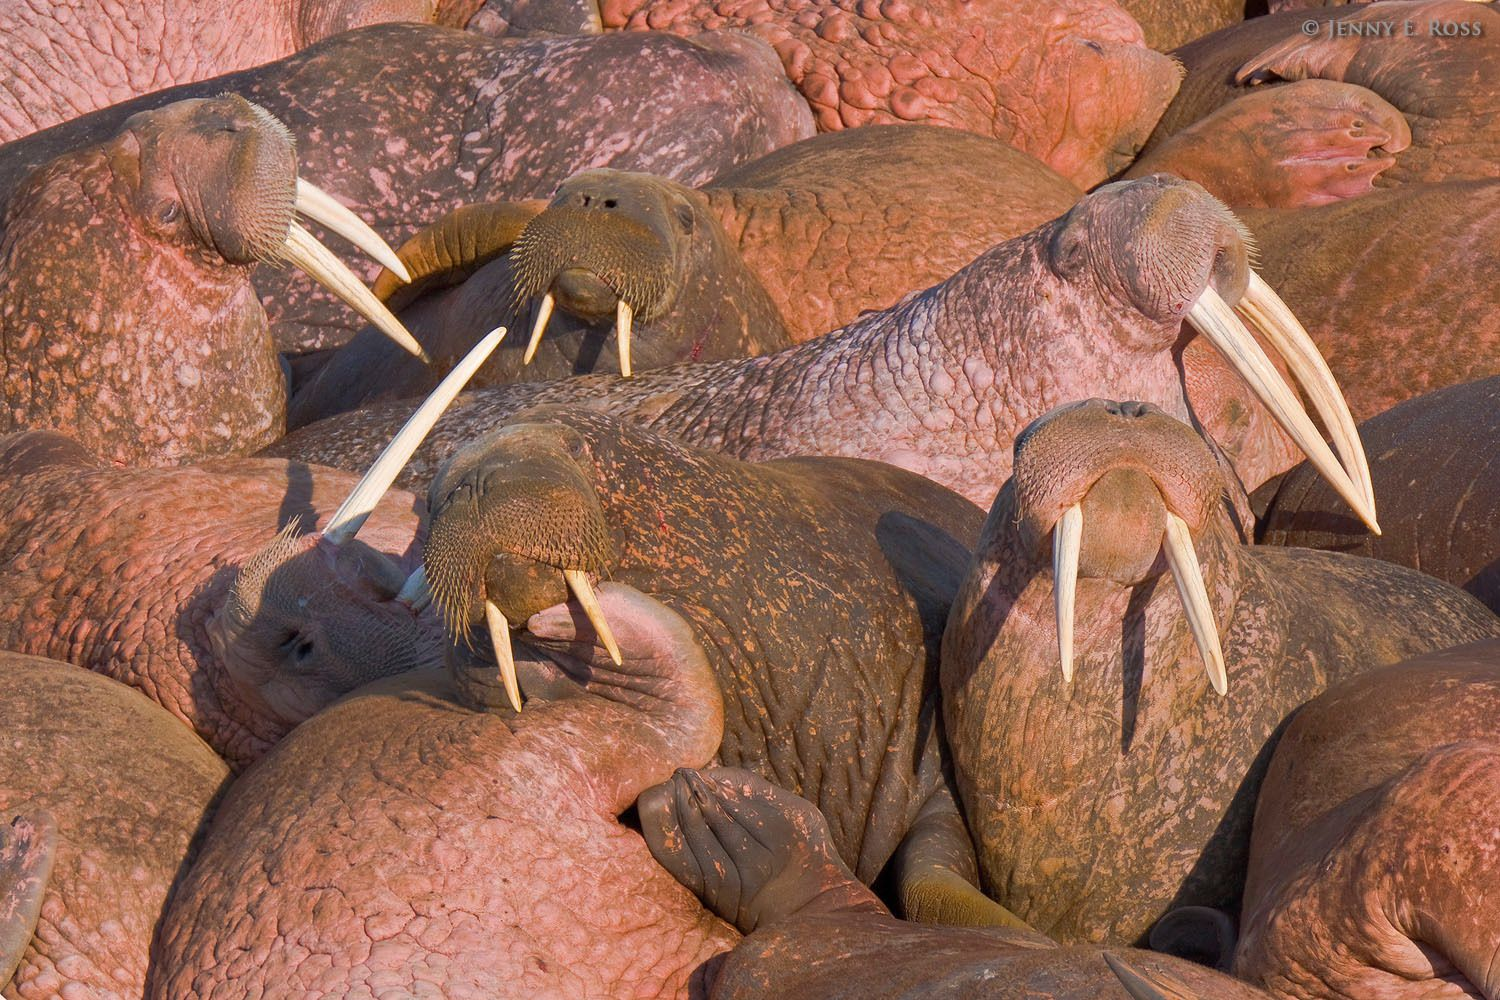 Pacific walruses (Odobenus rosmarus divergens) maneuver for position at a small crowded haul-out on Arakamchechen Island in the Bering Sea, Chukotka, Russia.